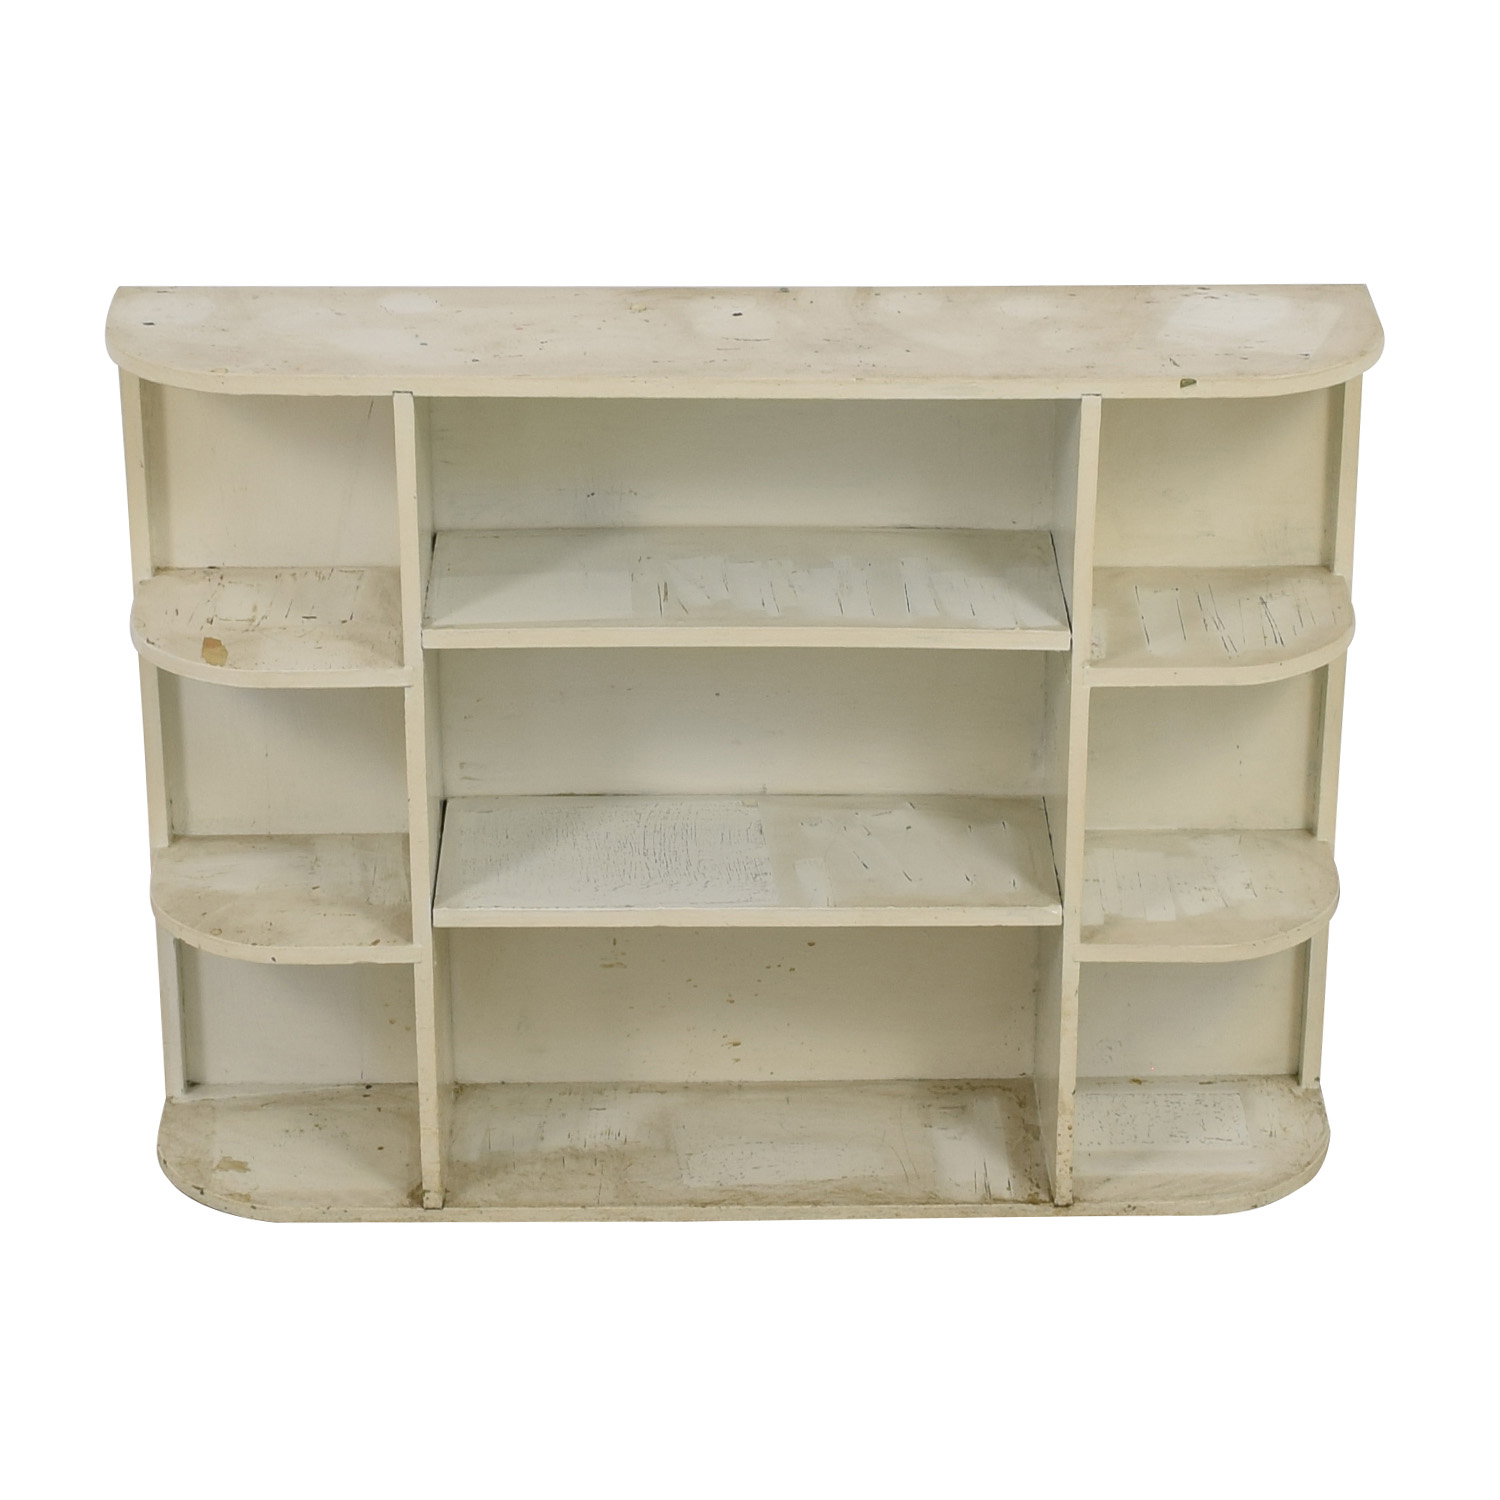 Rustic White Painted Book Shelf Storage